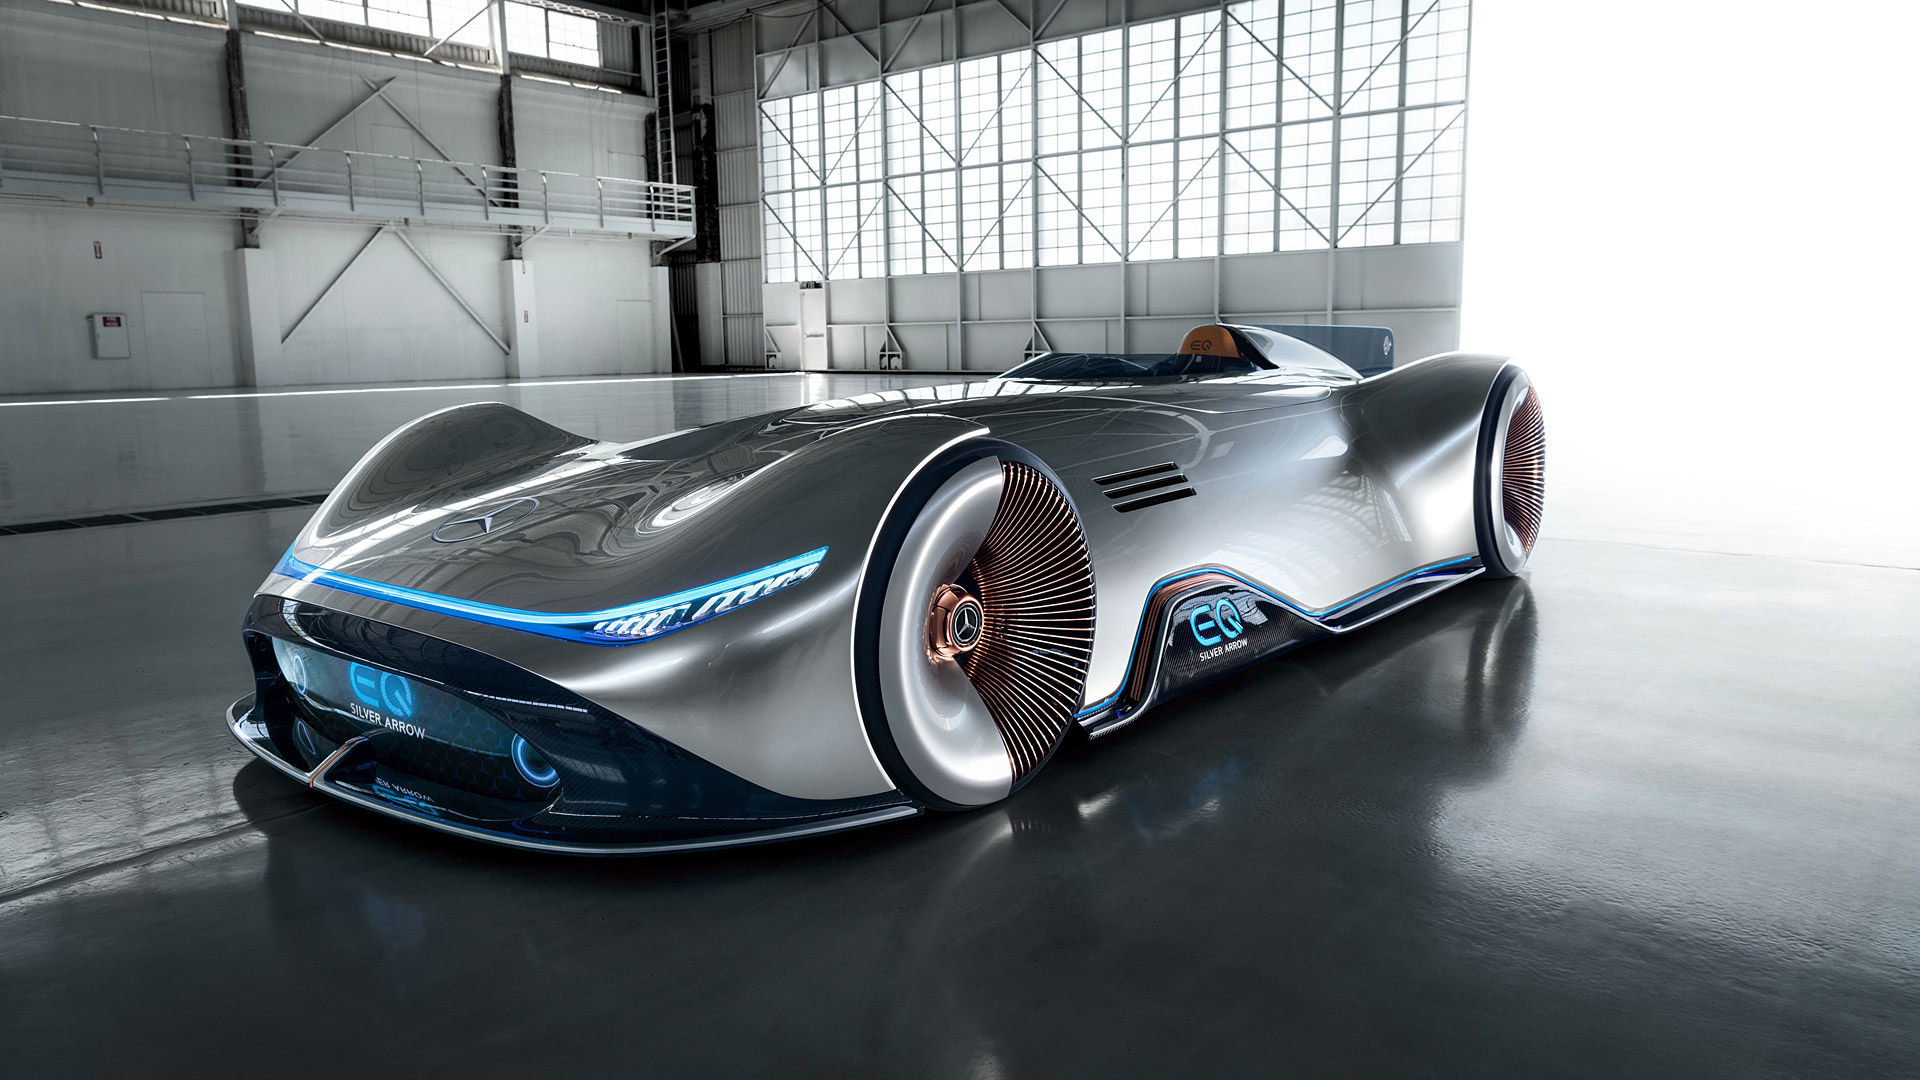 2018 Mercedes-Benz Vision EQ Silver Arrow Concept